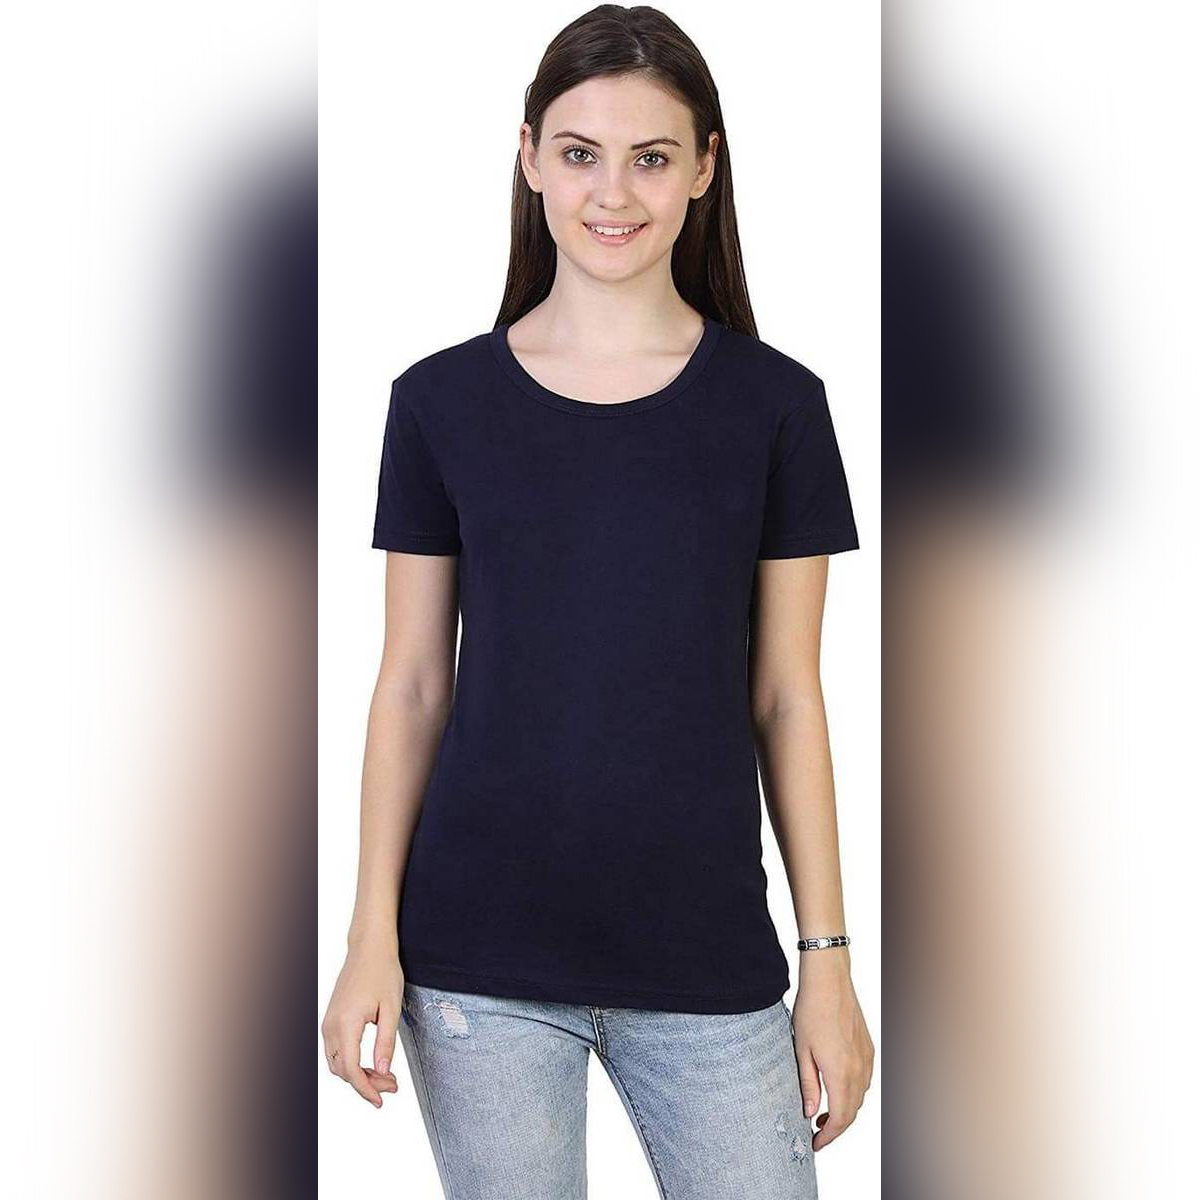 Multi Colour Plain Round Neck Half Sleeves Casual T Shirts for Girls Women & Ladies Black Red Light Grey White